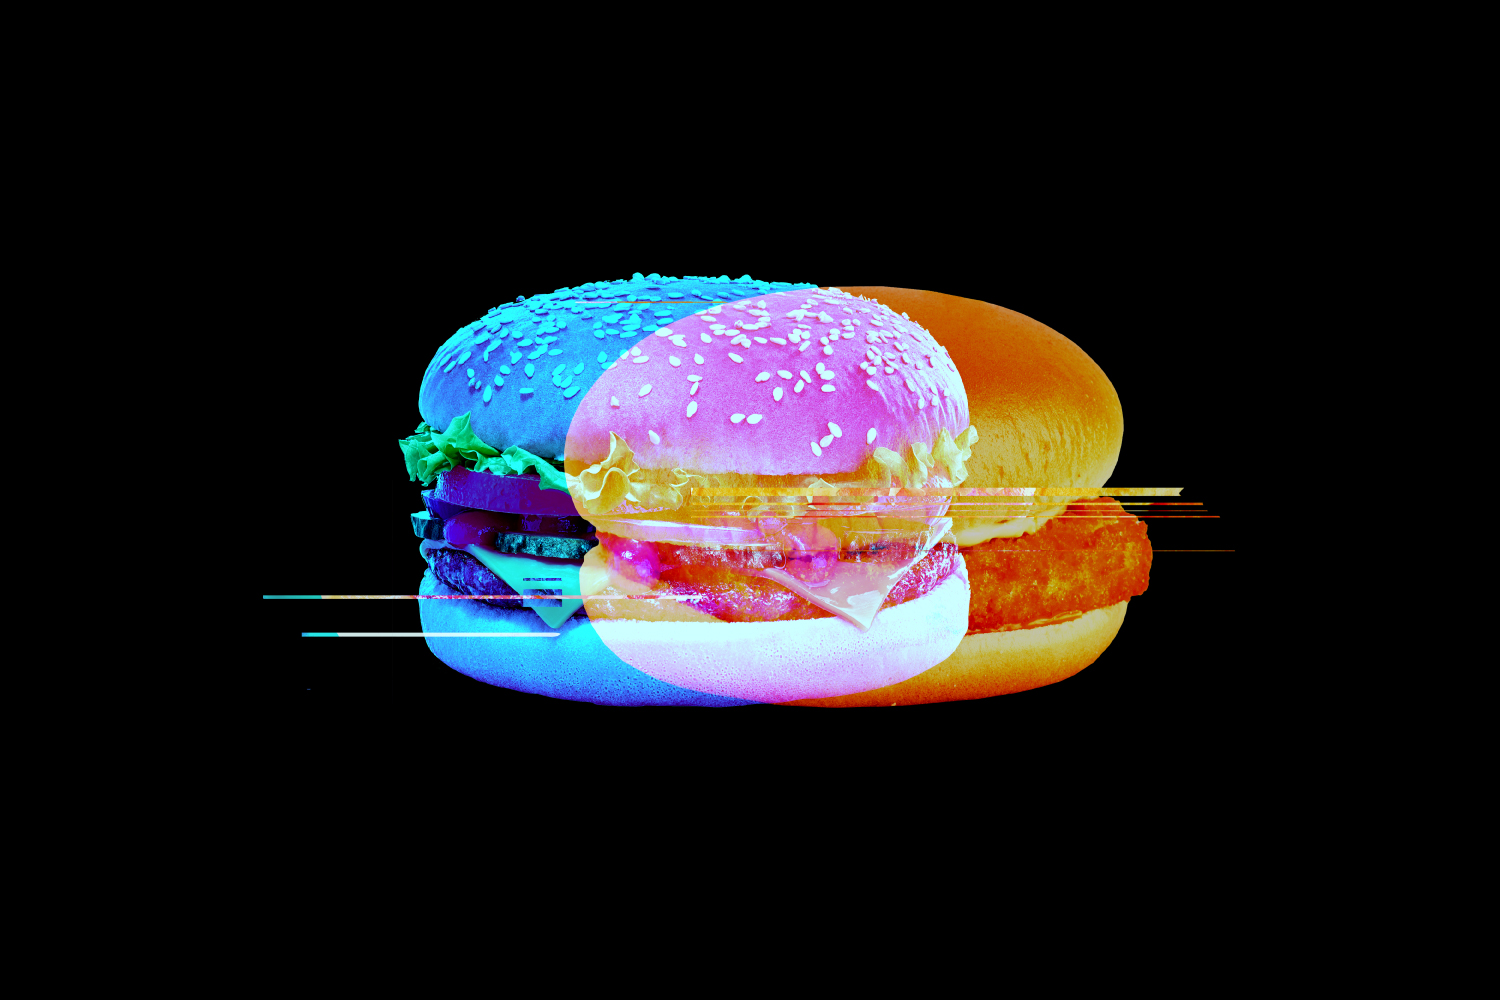 Hamburger download media reactions